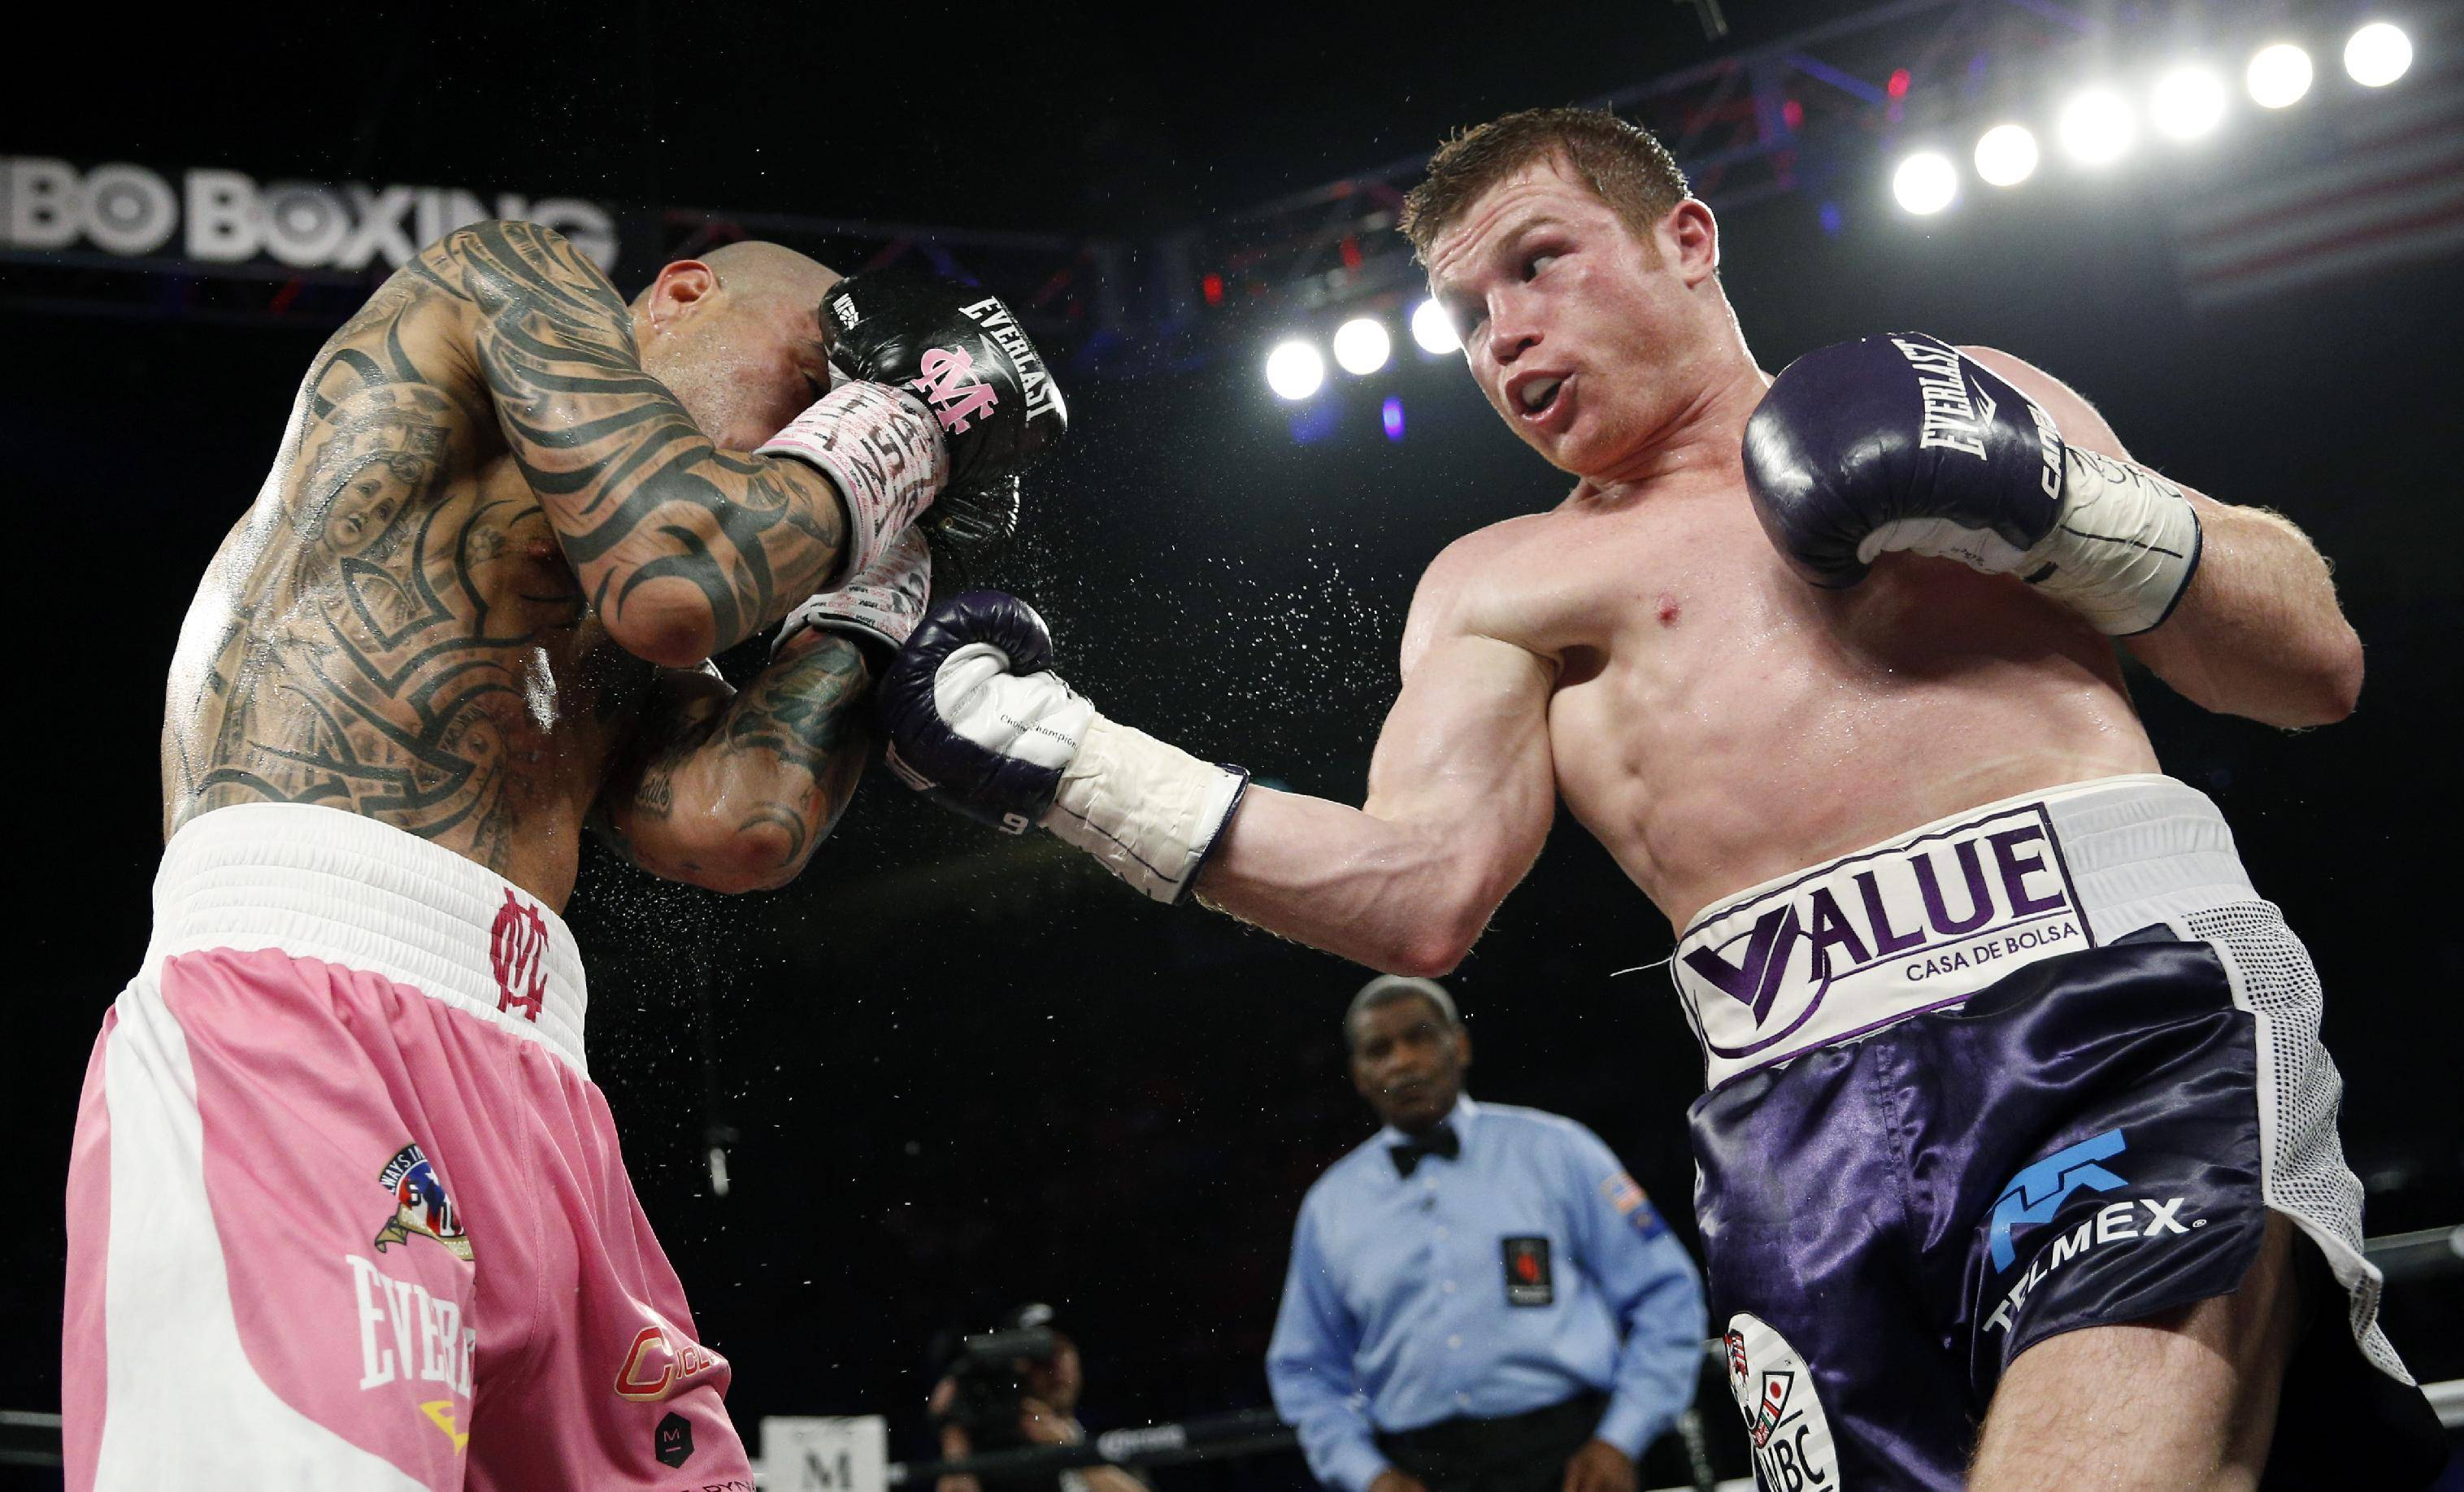 Miguel Cotto, left, of Puerto Rico, and Canelo Alvarez, of Mexico, fight each other during a WBC middleweight title bout Saturday, Nov. 21, 2015, in Las Vegas. (AP Photo/John Locher)